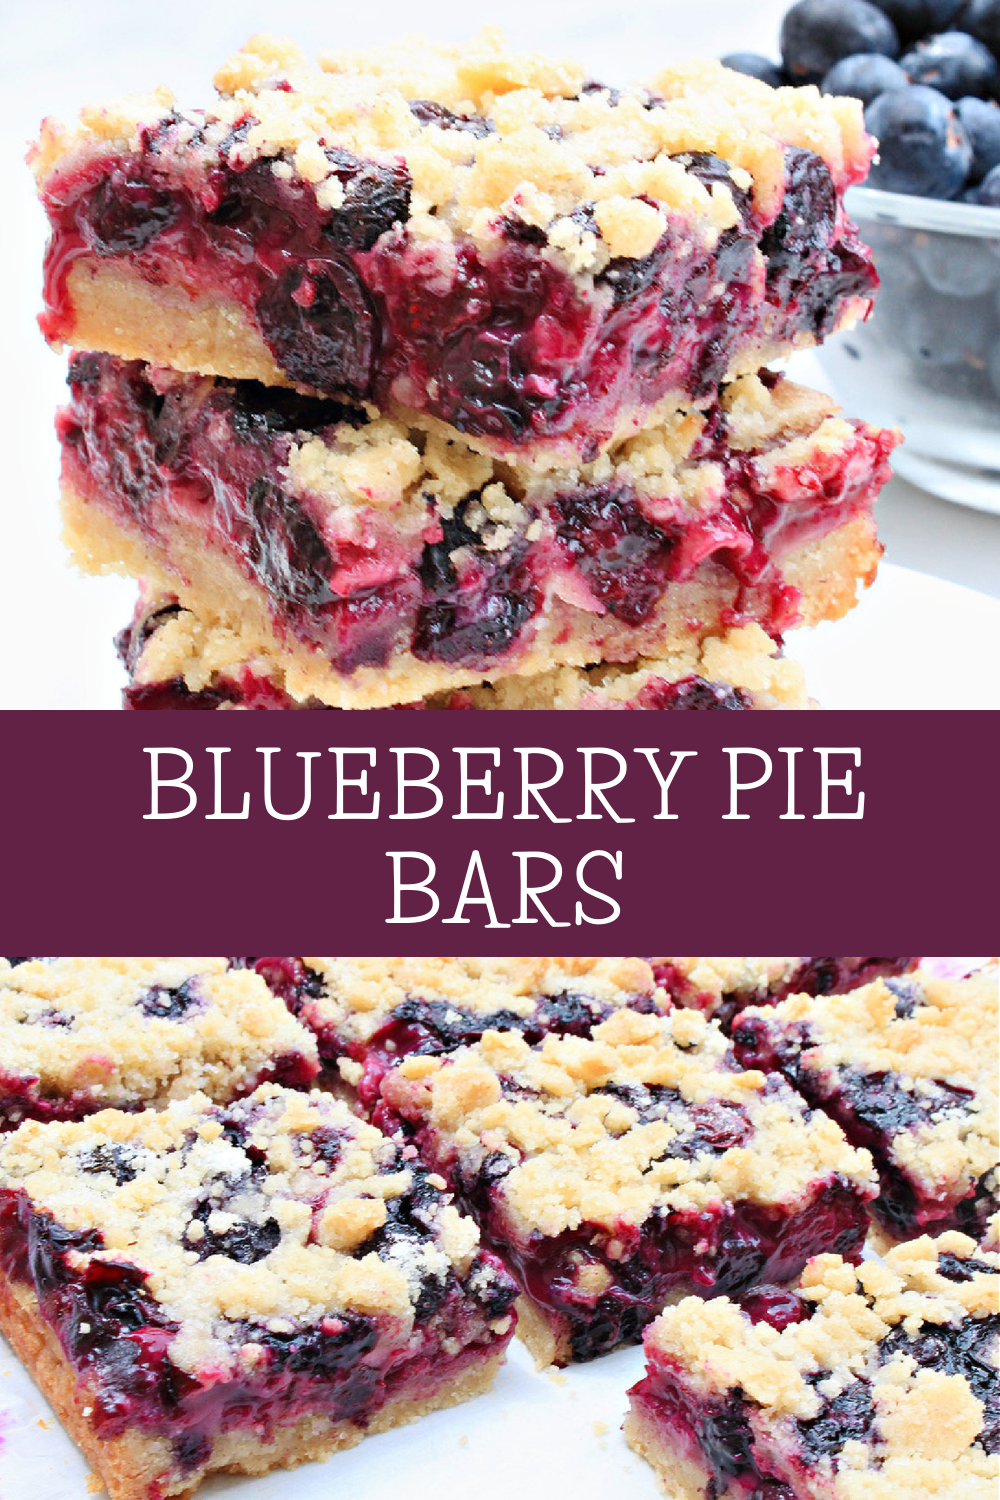 Vegan Blueberry Pie Bars ~ The flavor of fresh blueberries shines in this easy dairy-free alternative to classic blueberry pie! via @thiswifecooks